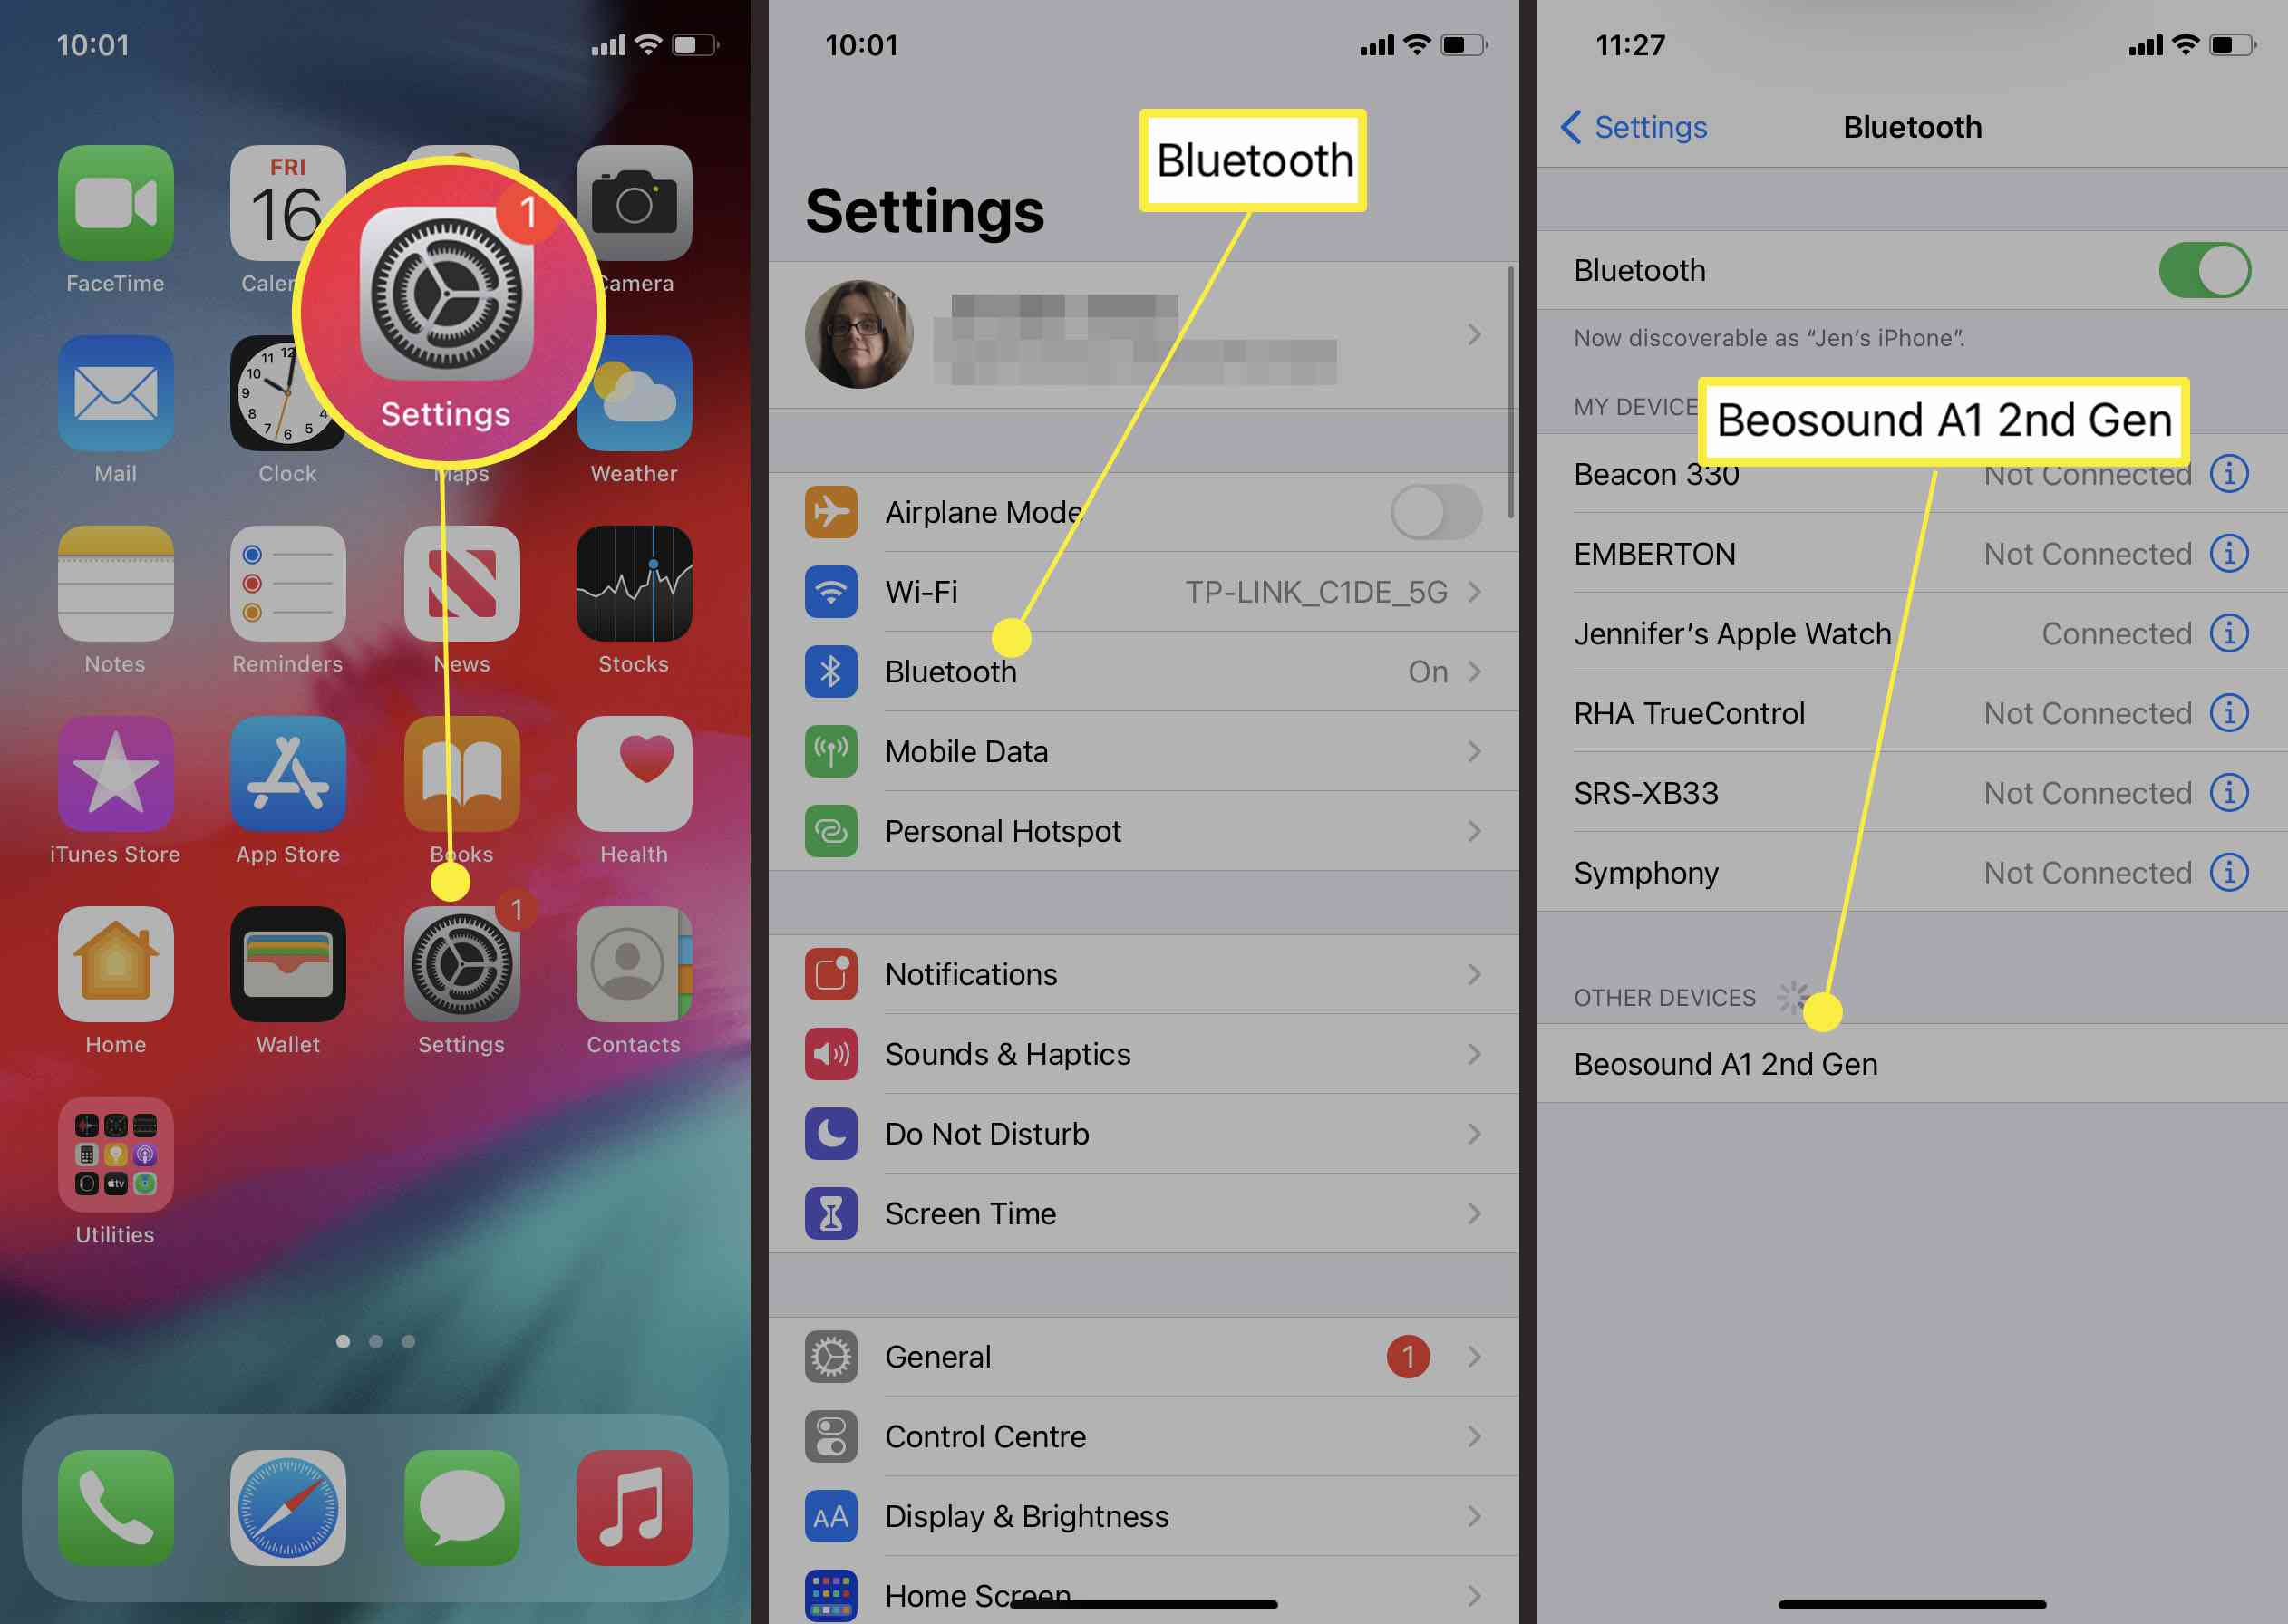 Steps required to connect Bluetooth speaker in iOS